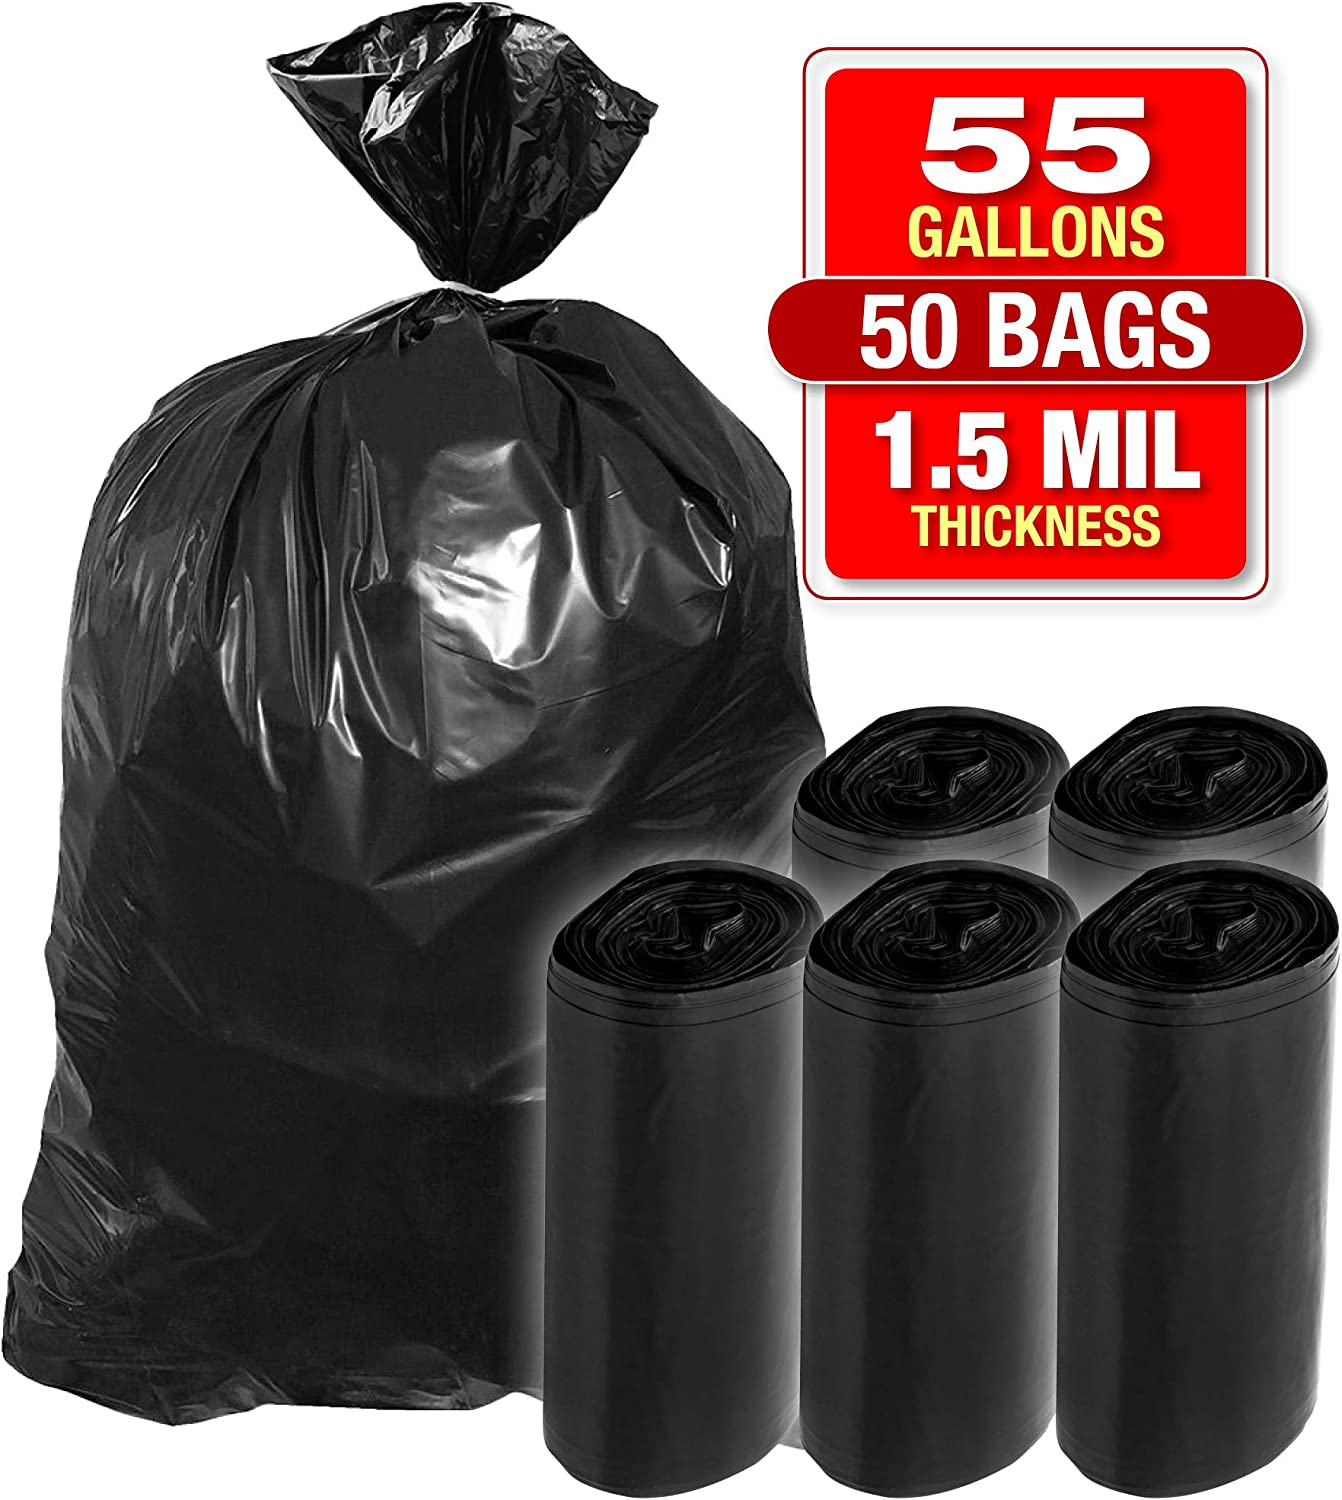 """Heavy Duty Black Trash Bags - 55 Gallon 50 PK Bags for Garbage, Storage - 1.5 Mil Thick, 35""""Wx55""""H Industrial Grade Trash Bags for Construction, Yard Work, Commercial Use - by Tougher Goods"""